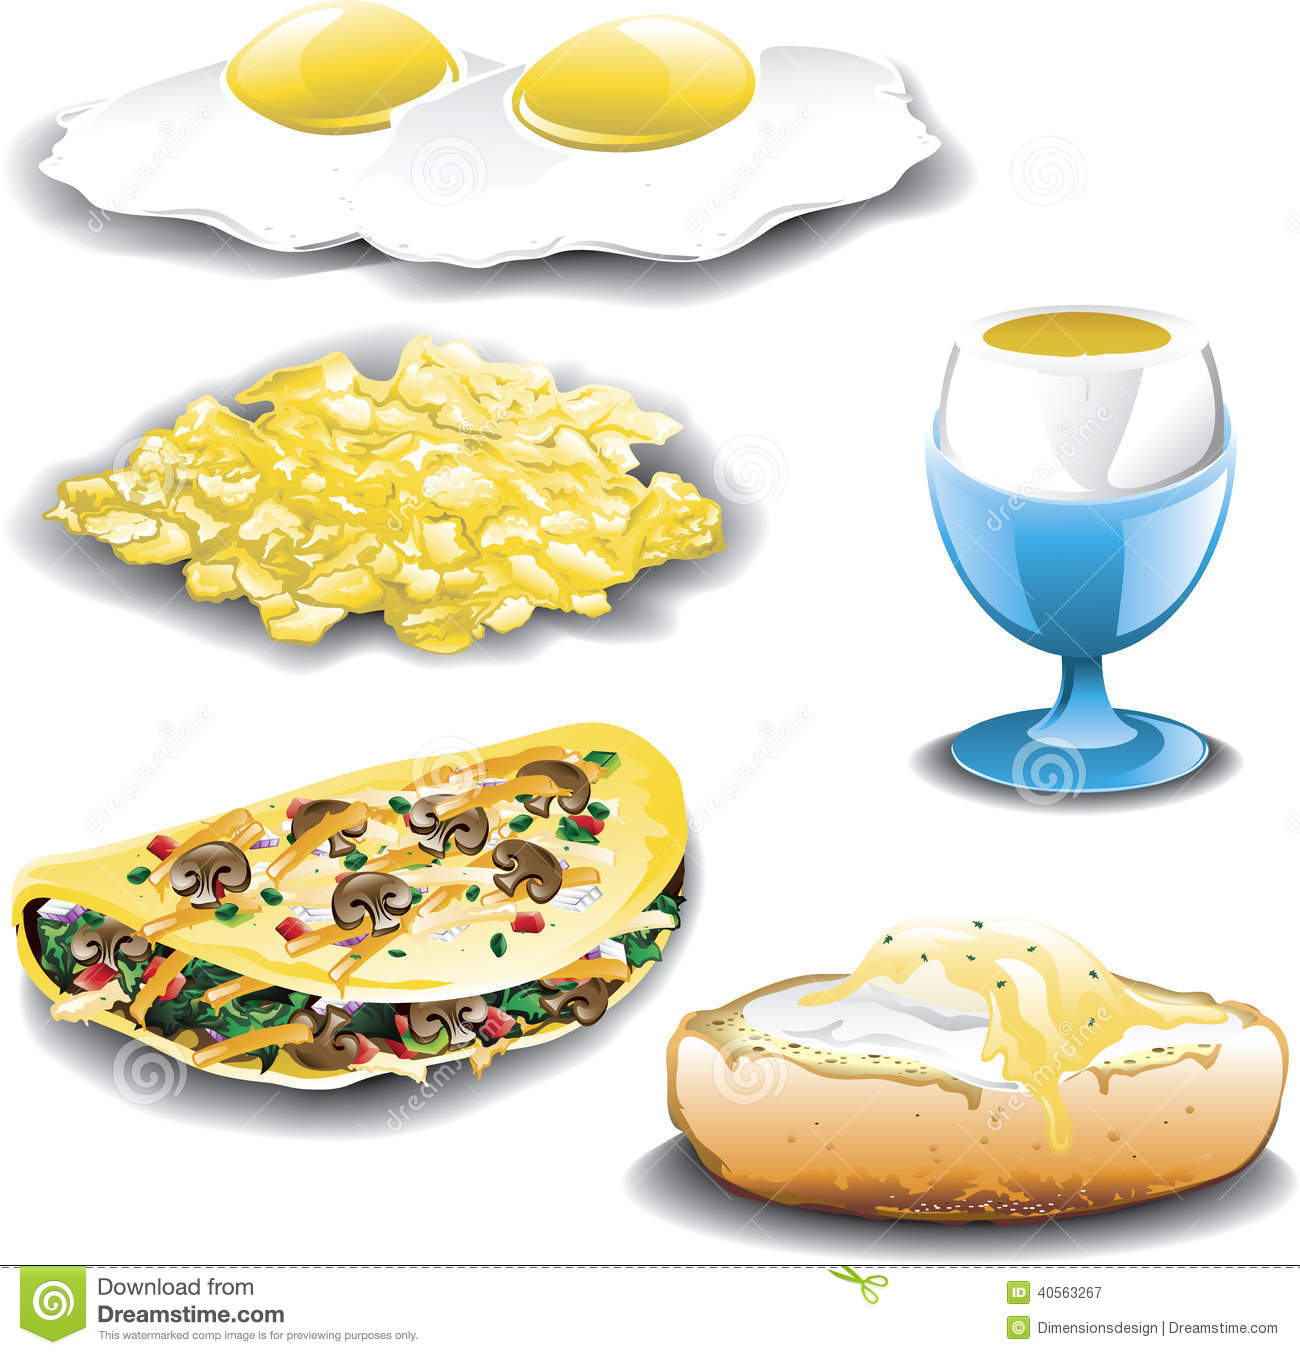 Eggs Assorted Stock Vector - Image: 40563267